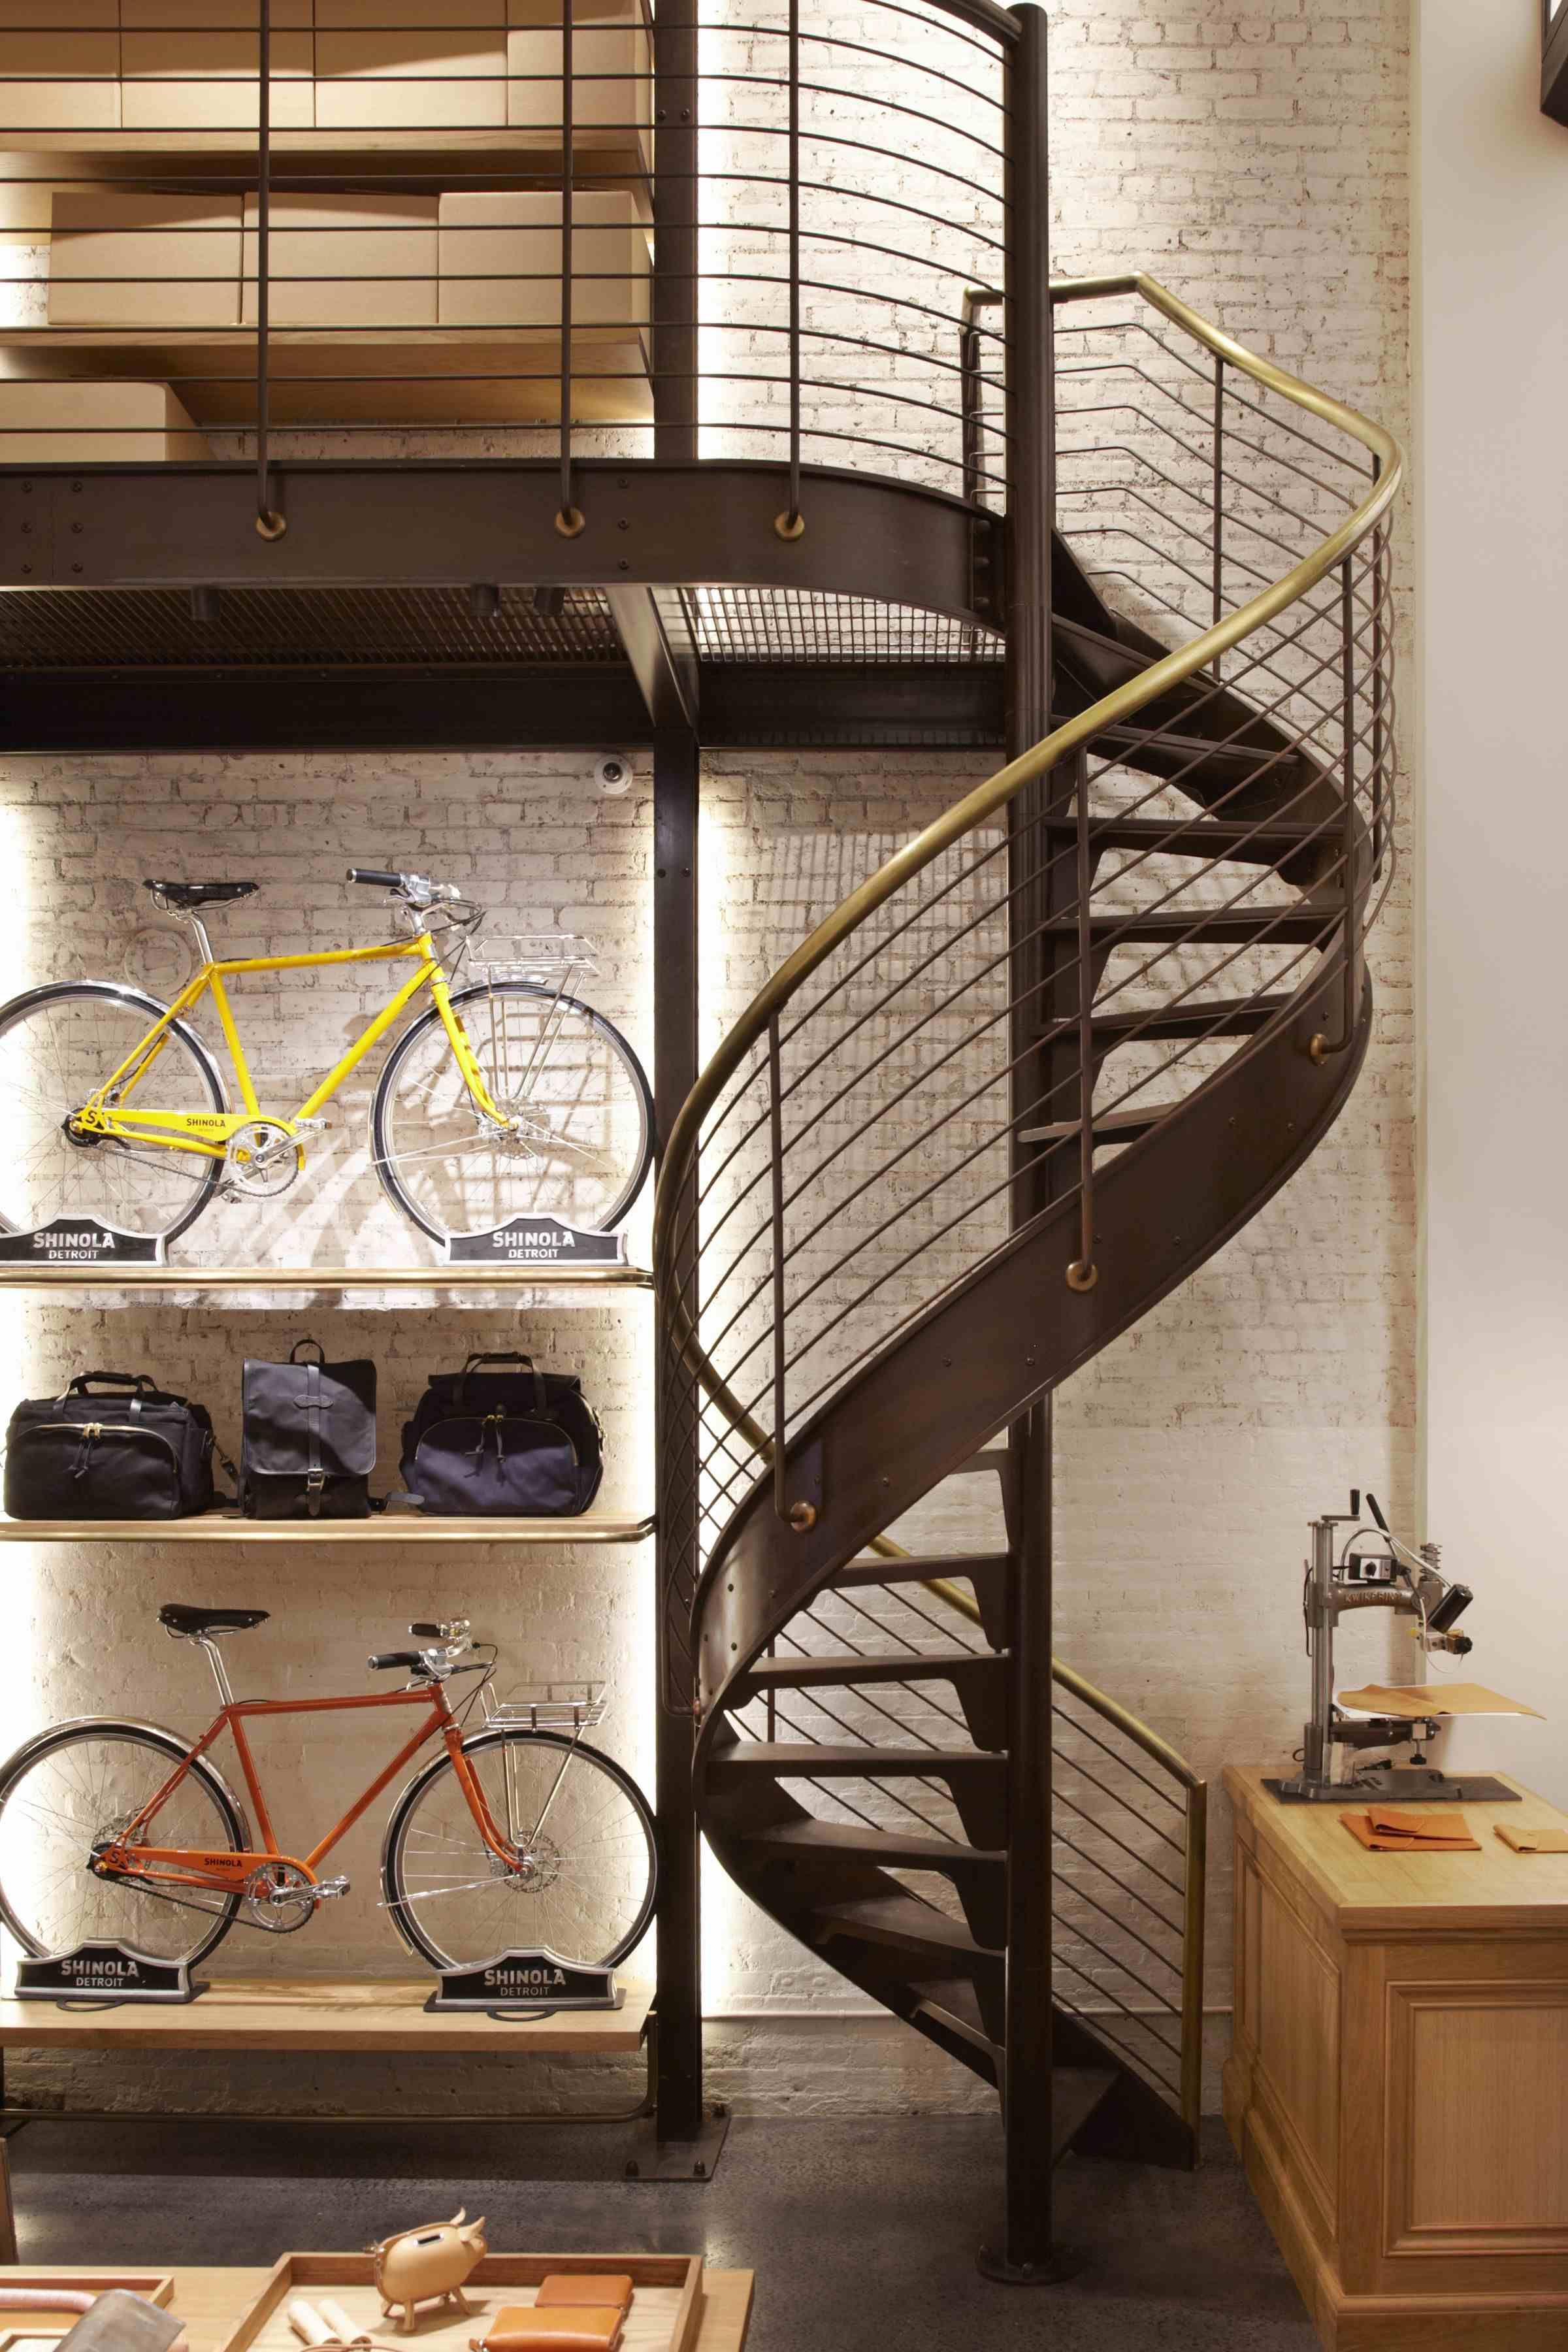 Detroits Shinola Opens Retail Boutique In Manhattanwould Be Cool In